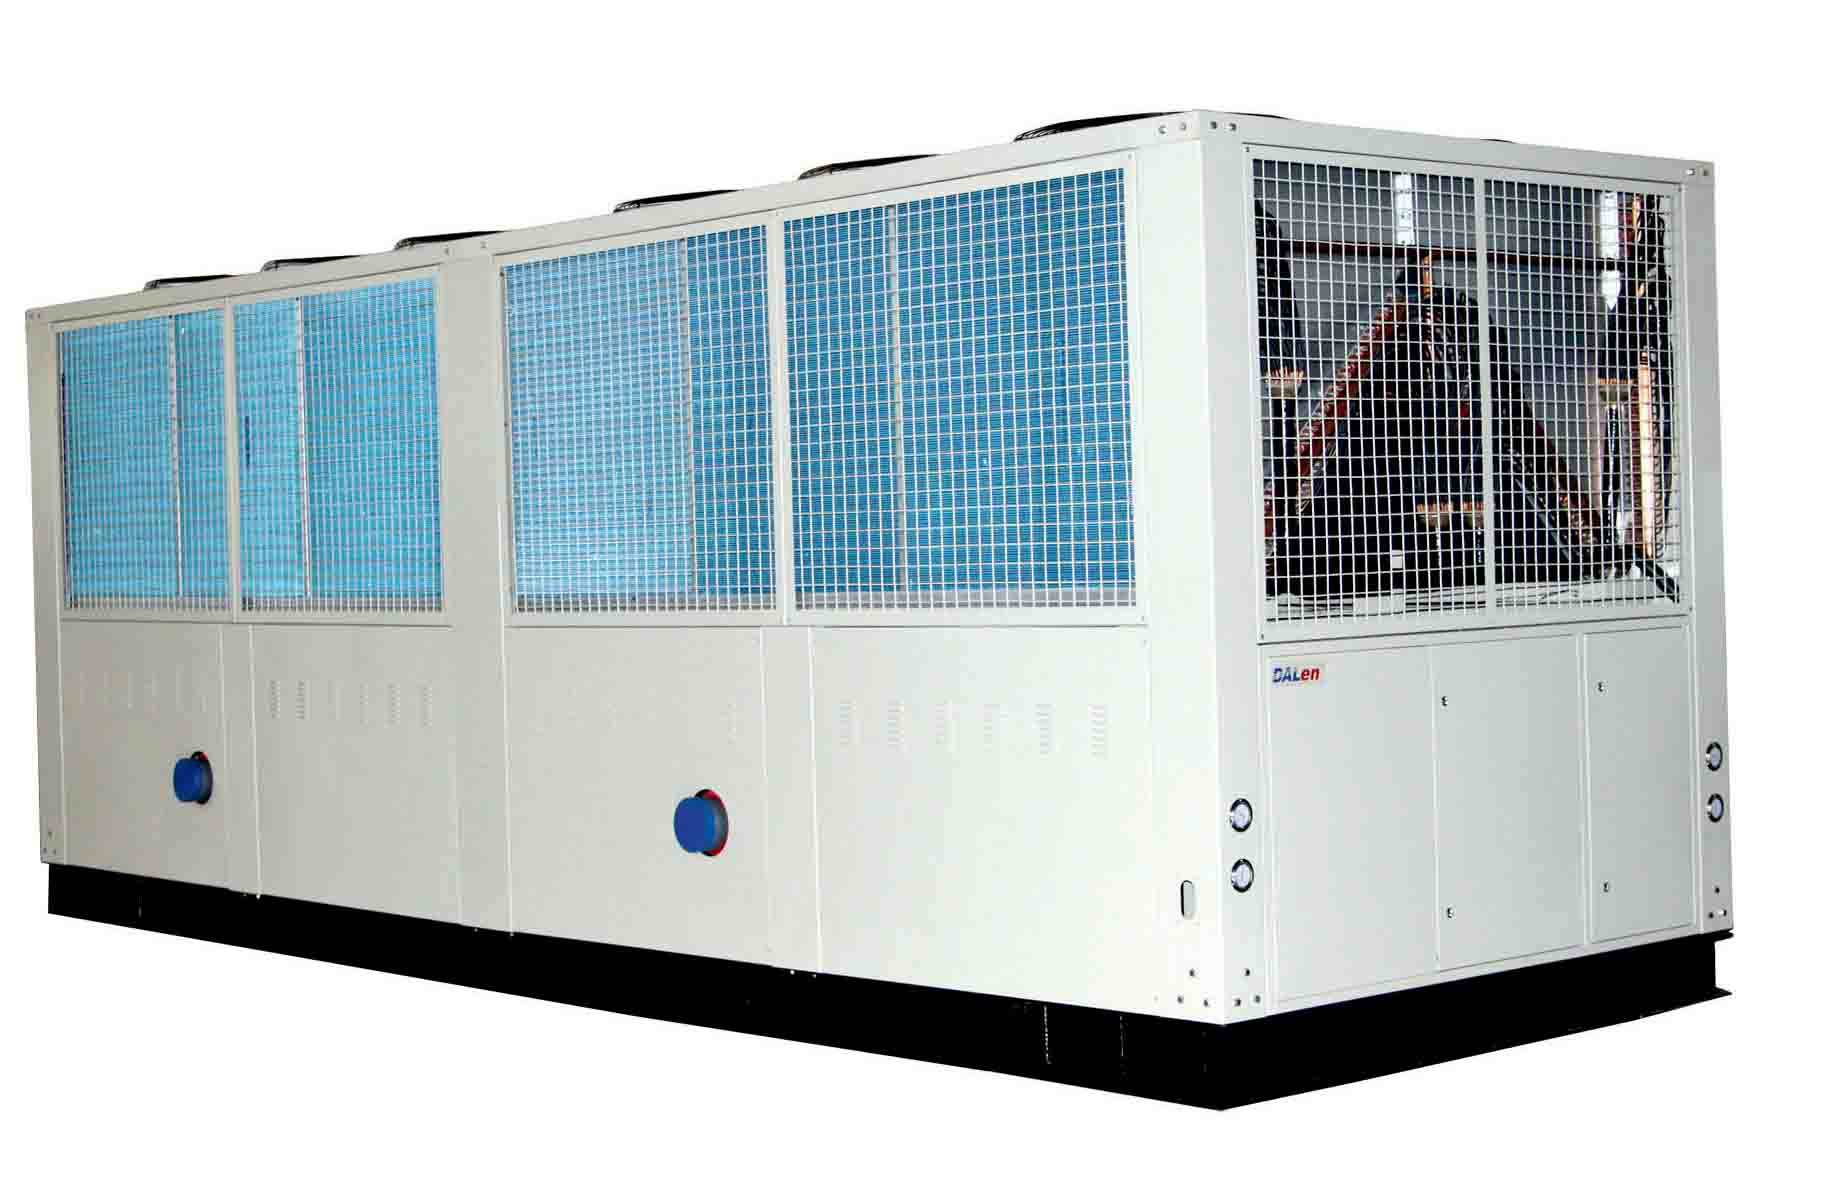 CE Air Cooled Screw (Heat Pump) Chiller (Double Compressors) [Jun 10  #3B7690